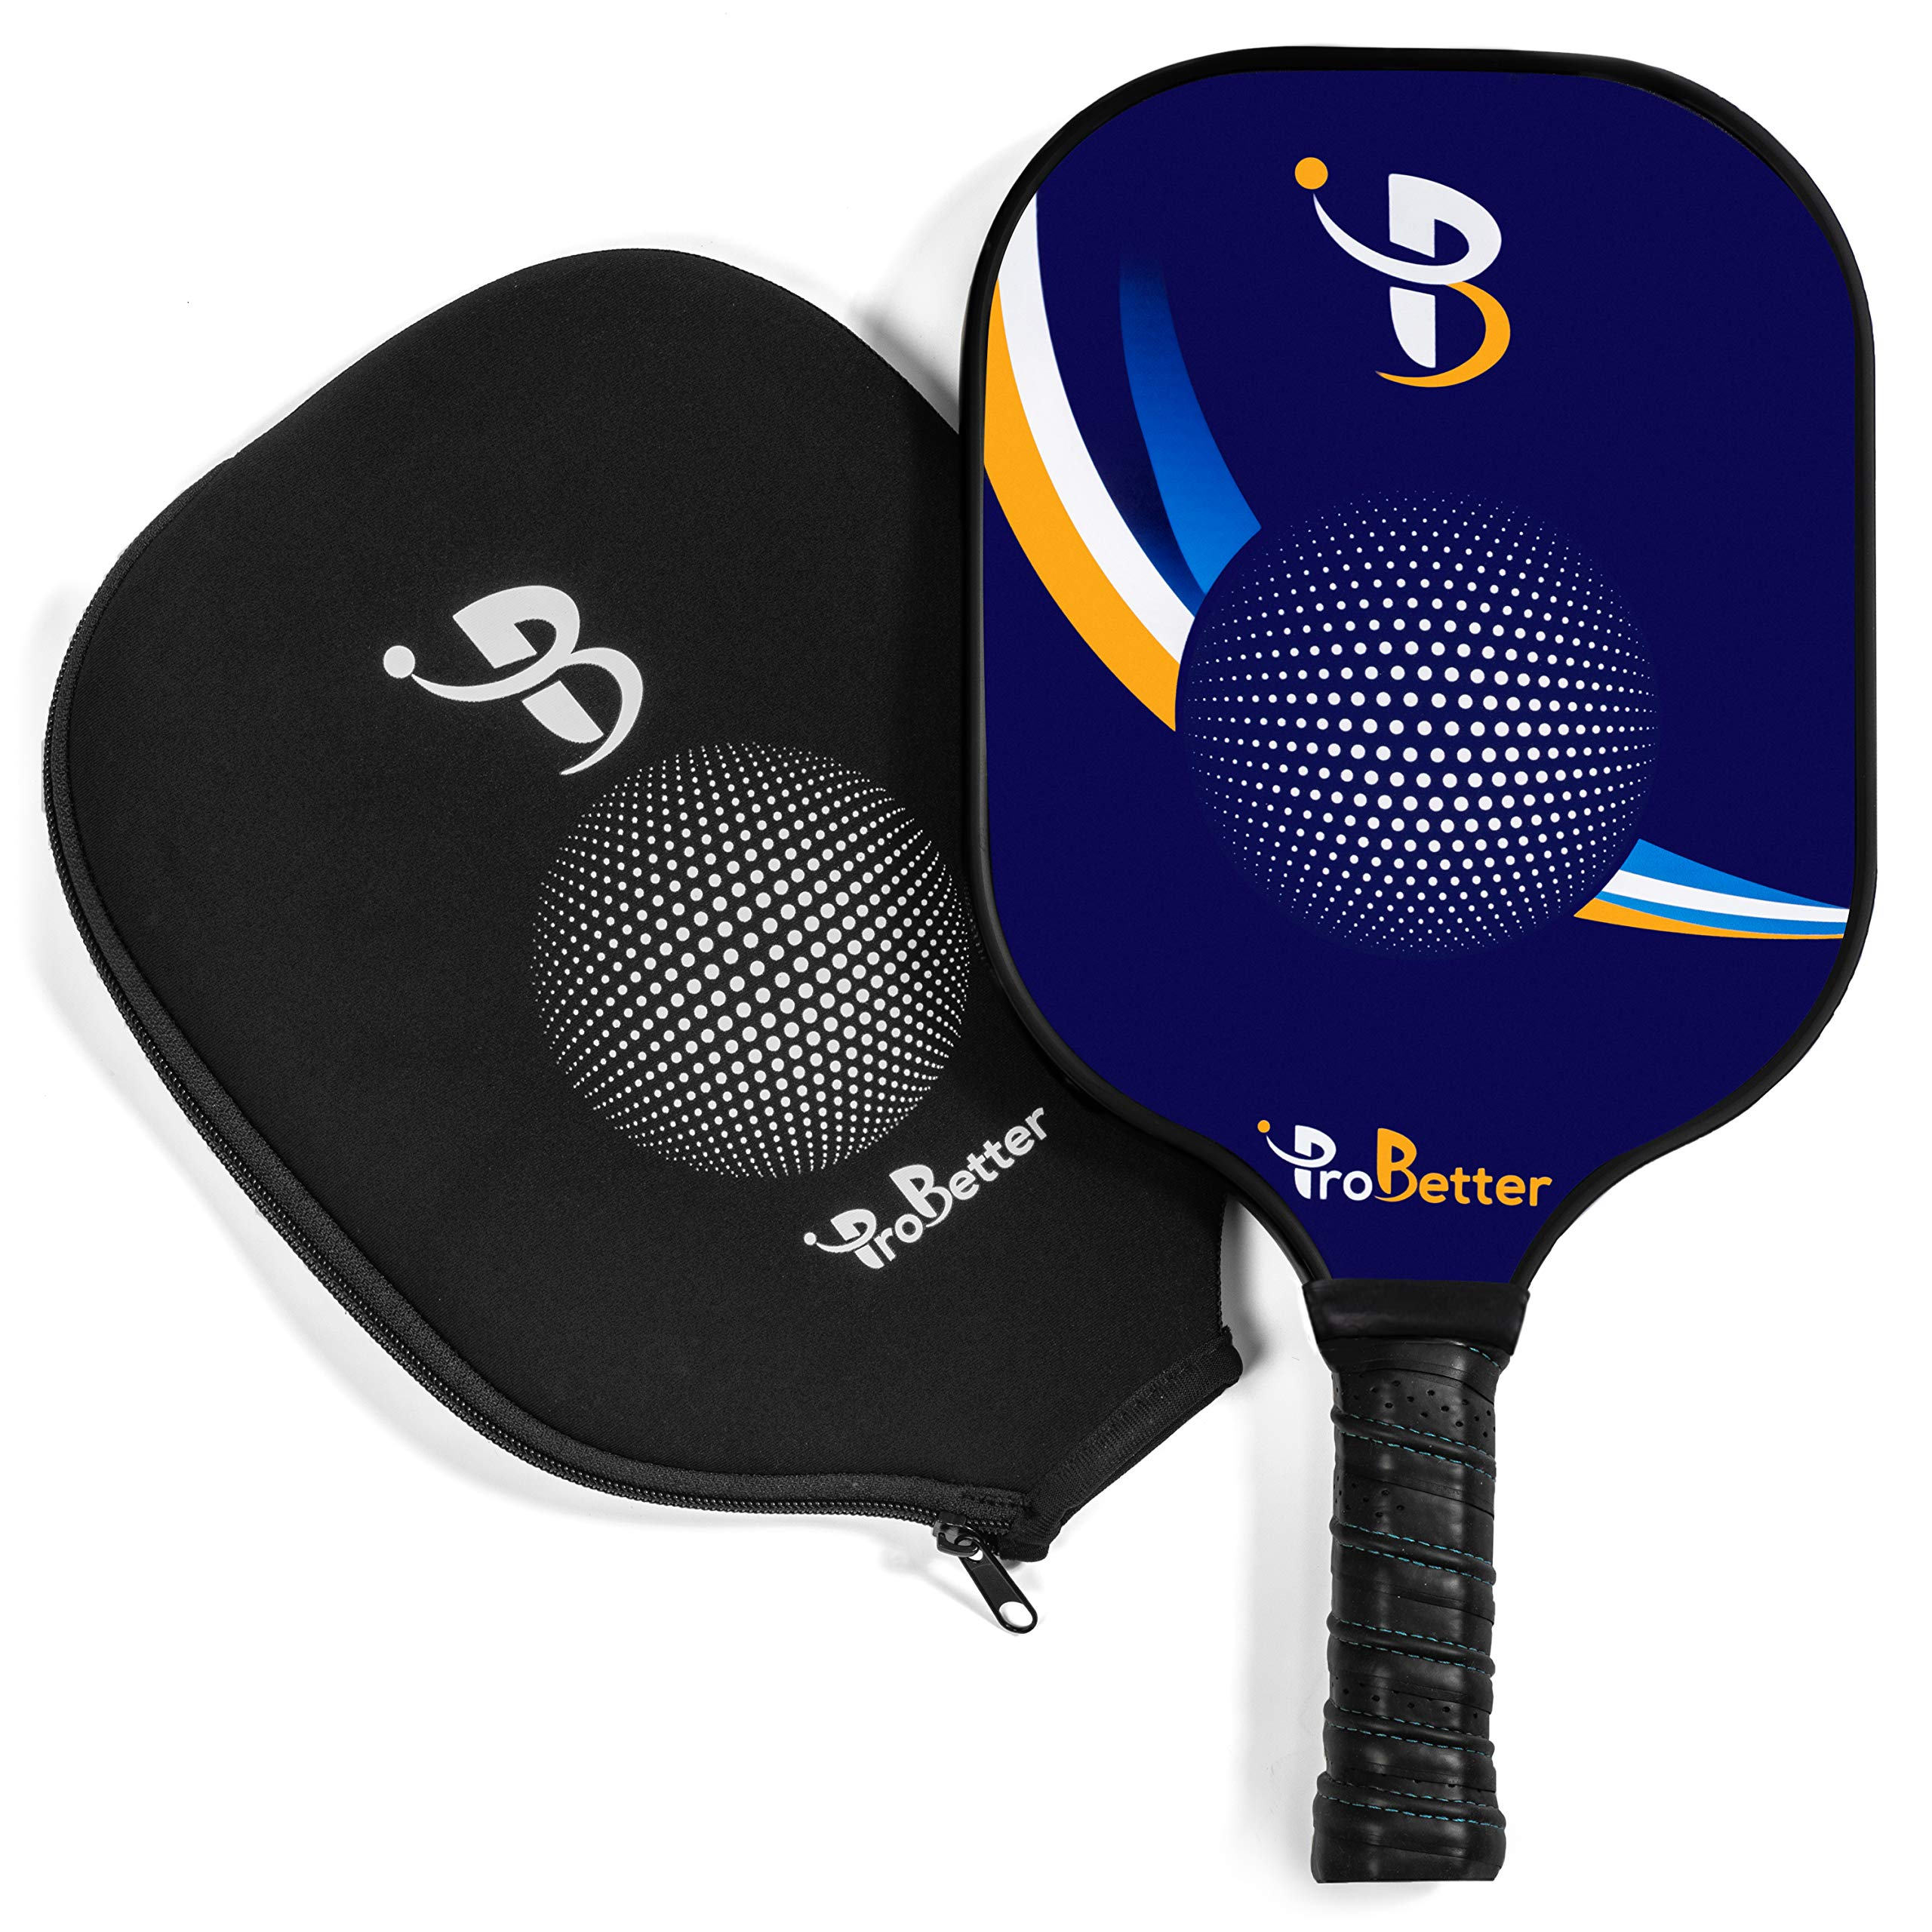 ProBetter Pickleball Paddle Graphite Face Polymer Honeycomb Core - Edge Guard - Racket Cover - Premium Cushion Grip Provides Perfect Balance Power Control for Players of All Levels by ProBetter